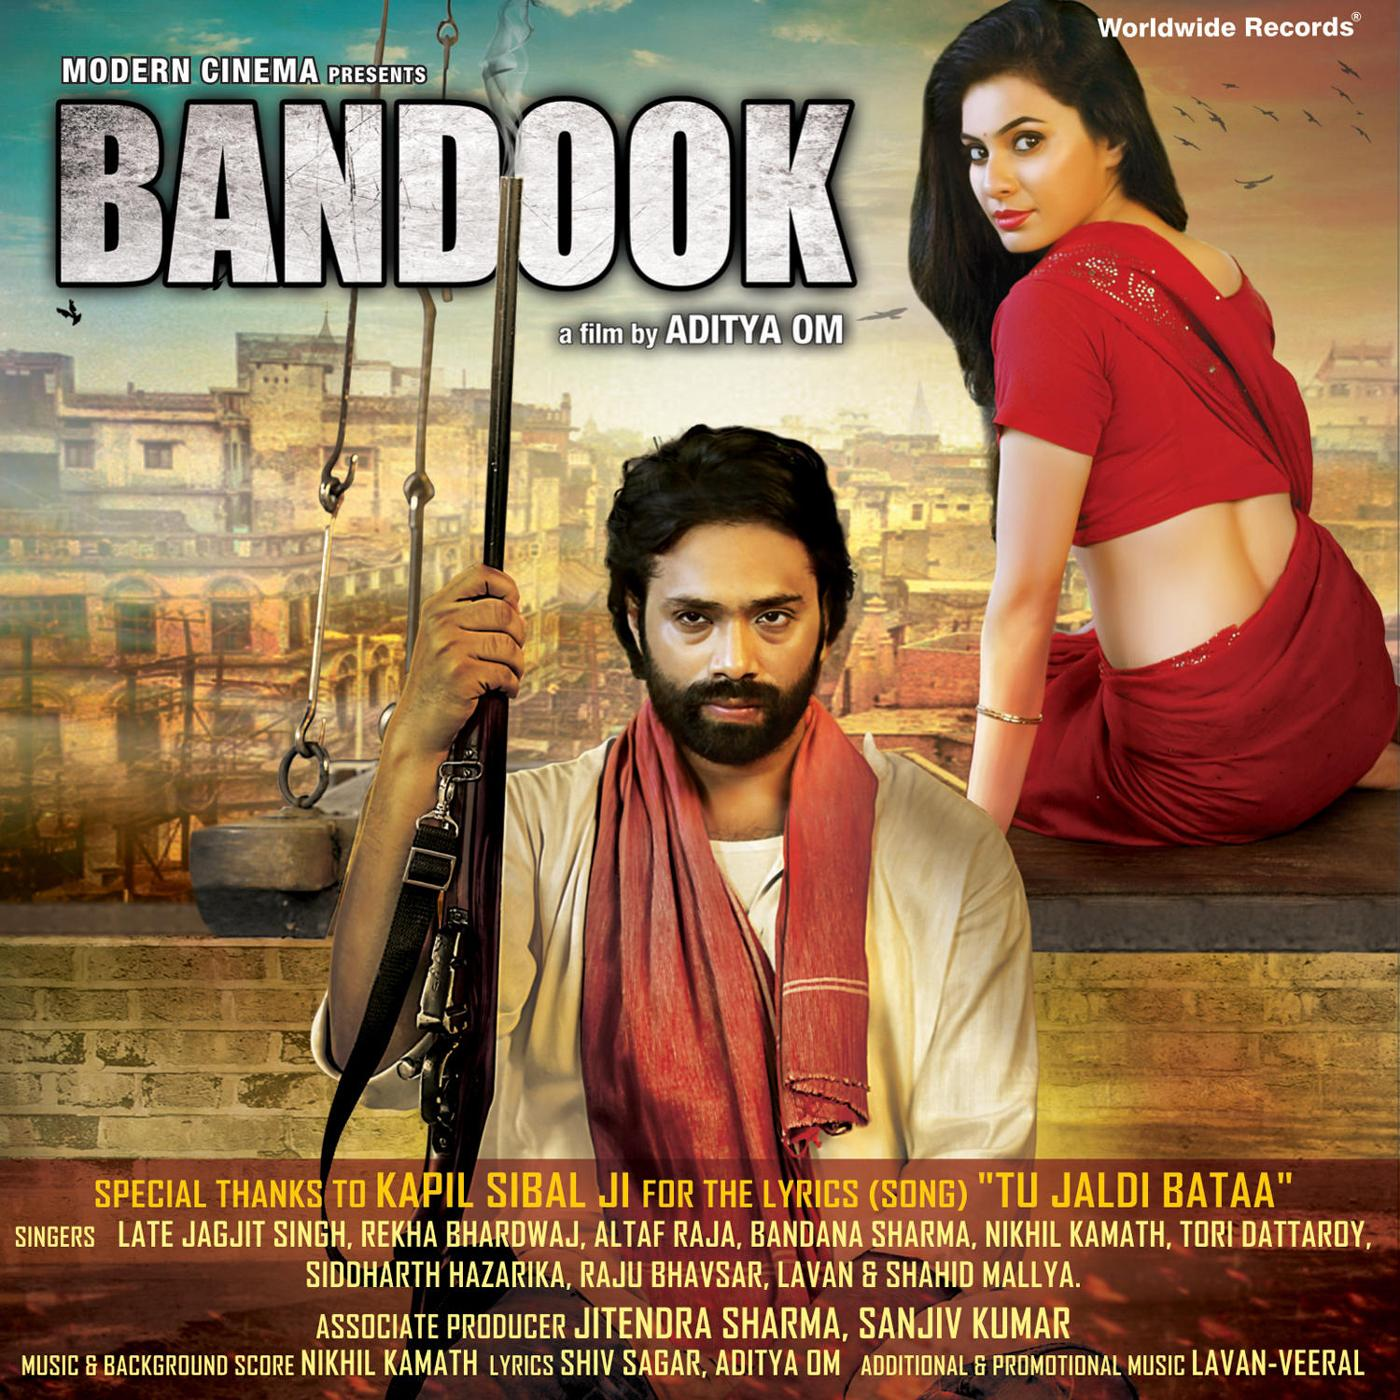 Bandook Trailer